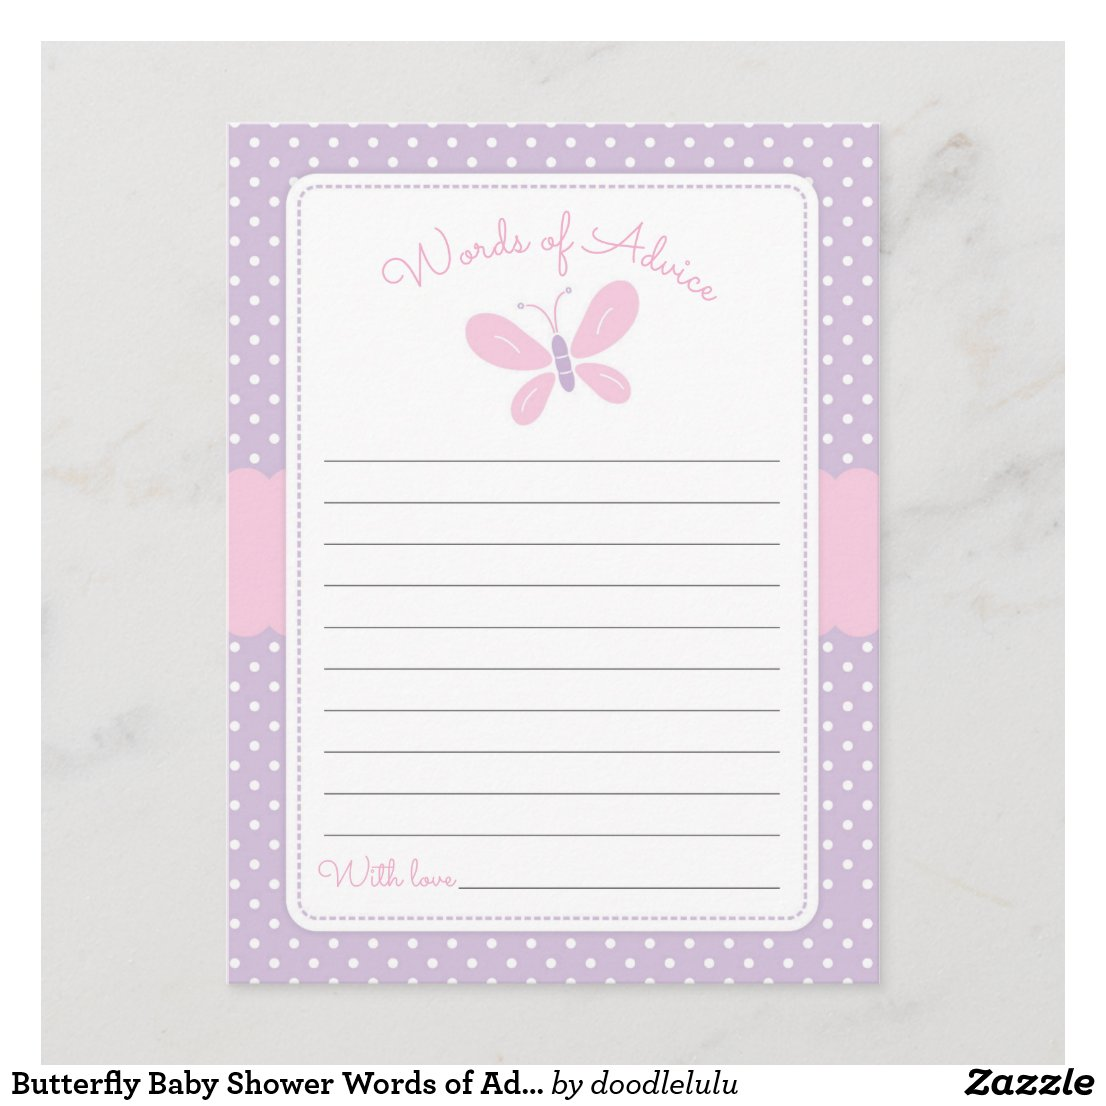 Butterfly Baby Shower Words of Advice purple pink